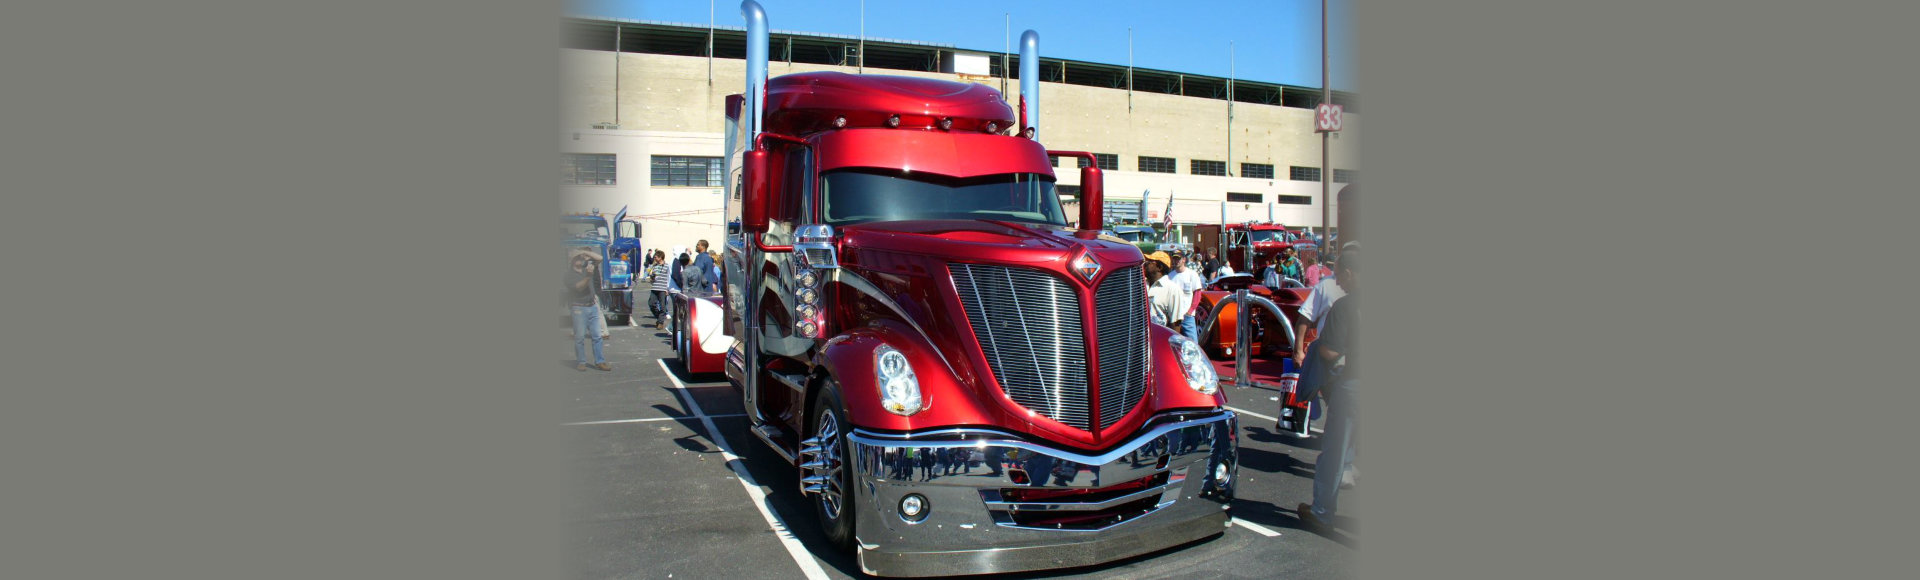 Shiny red truck